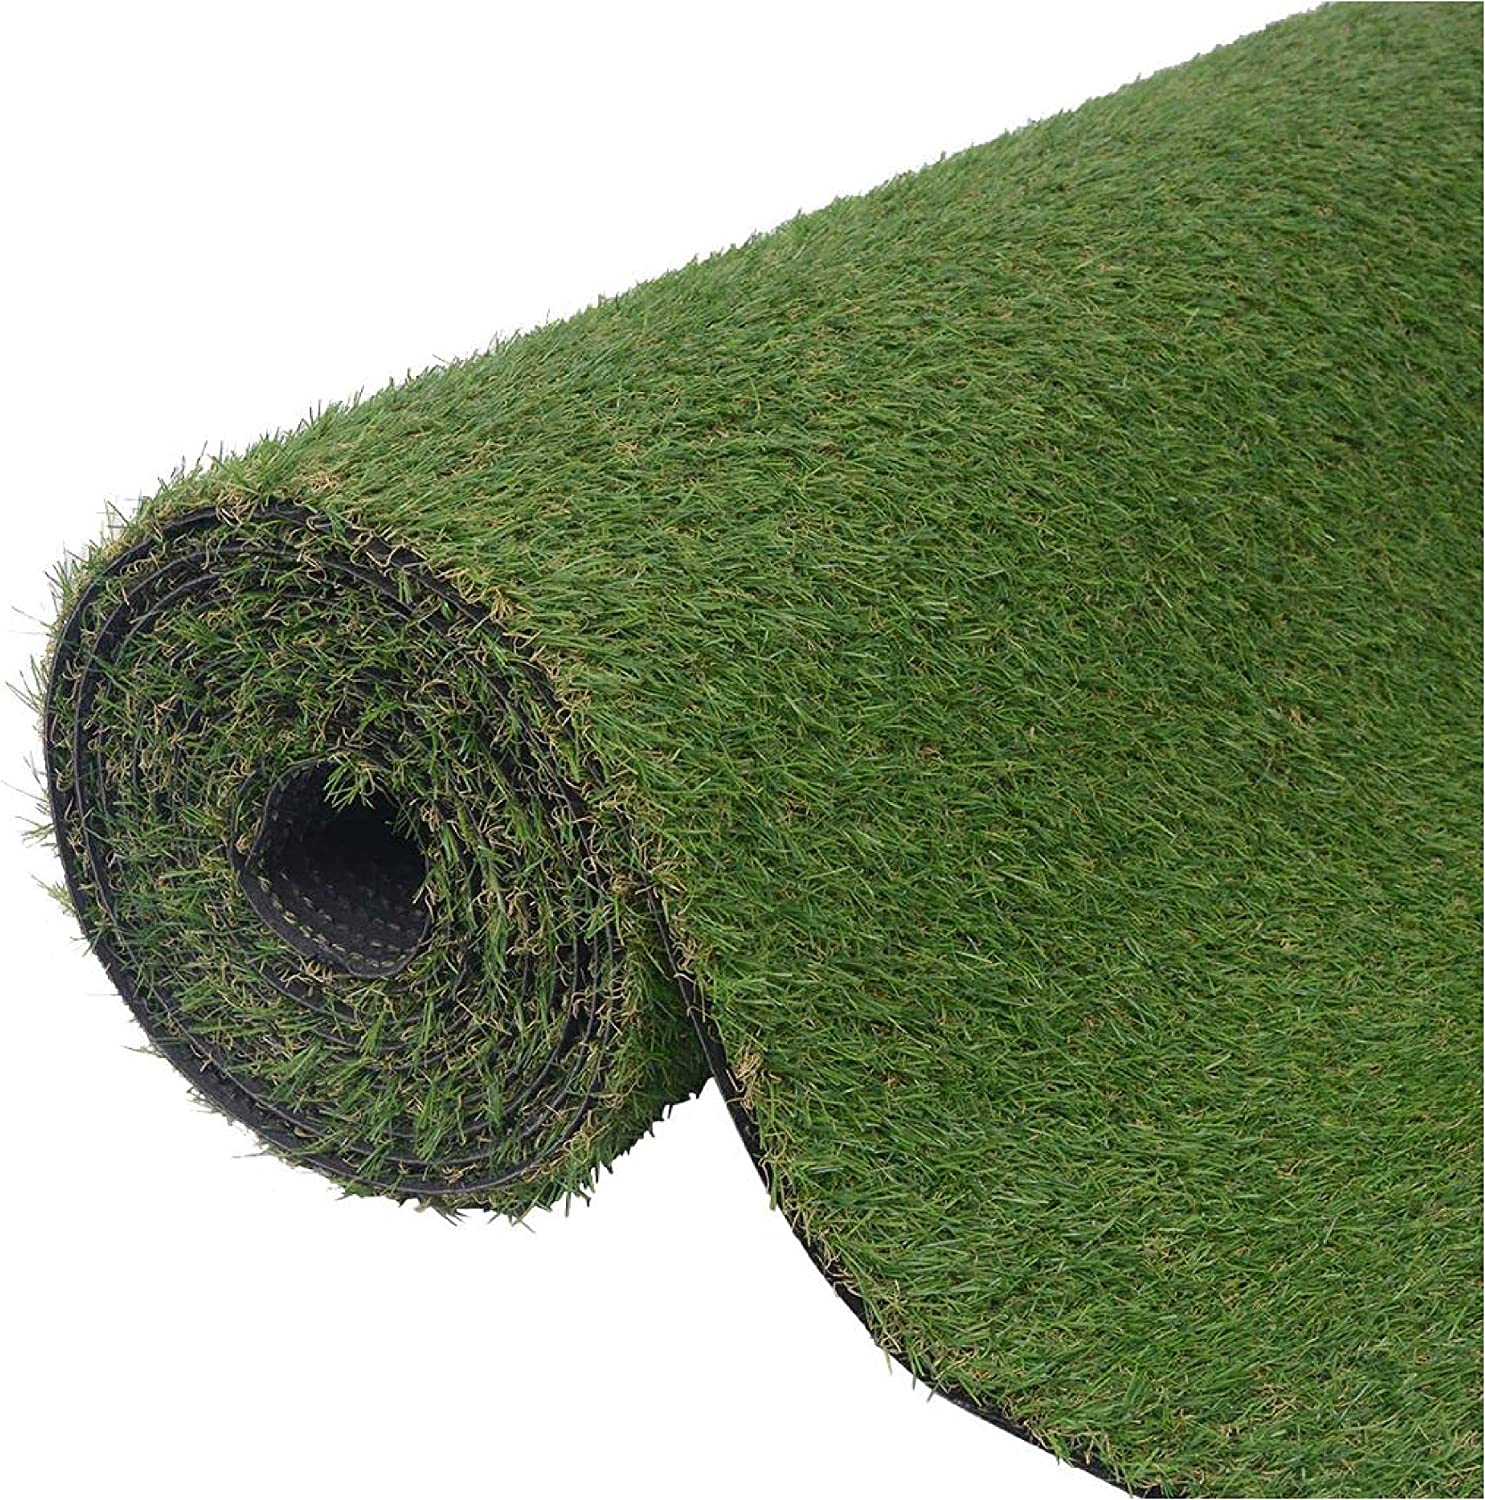 Artificial Flora Quantity limited Grass New Free Shipping 3.3'x26.2' 0.8